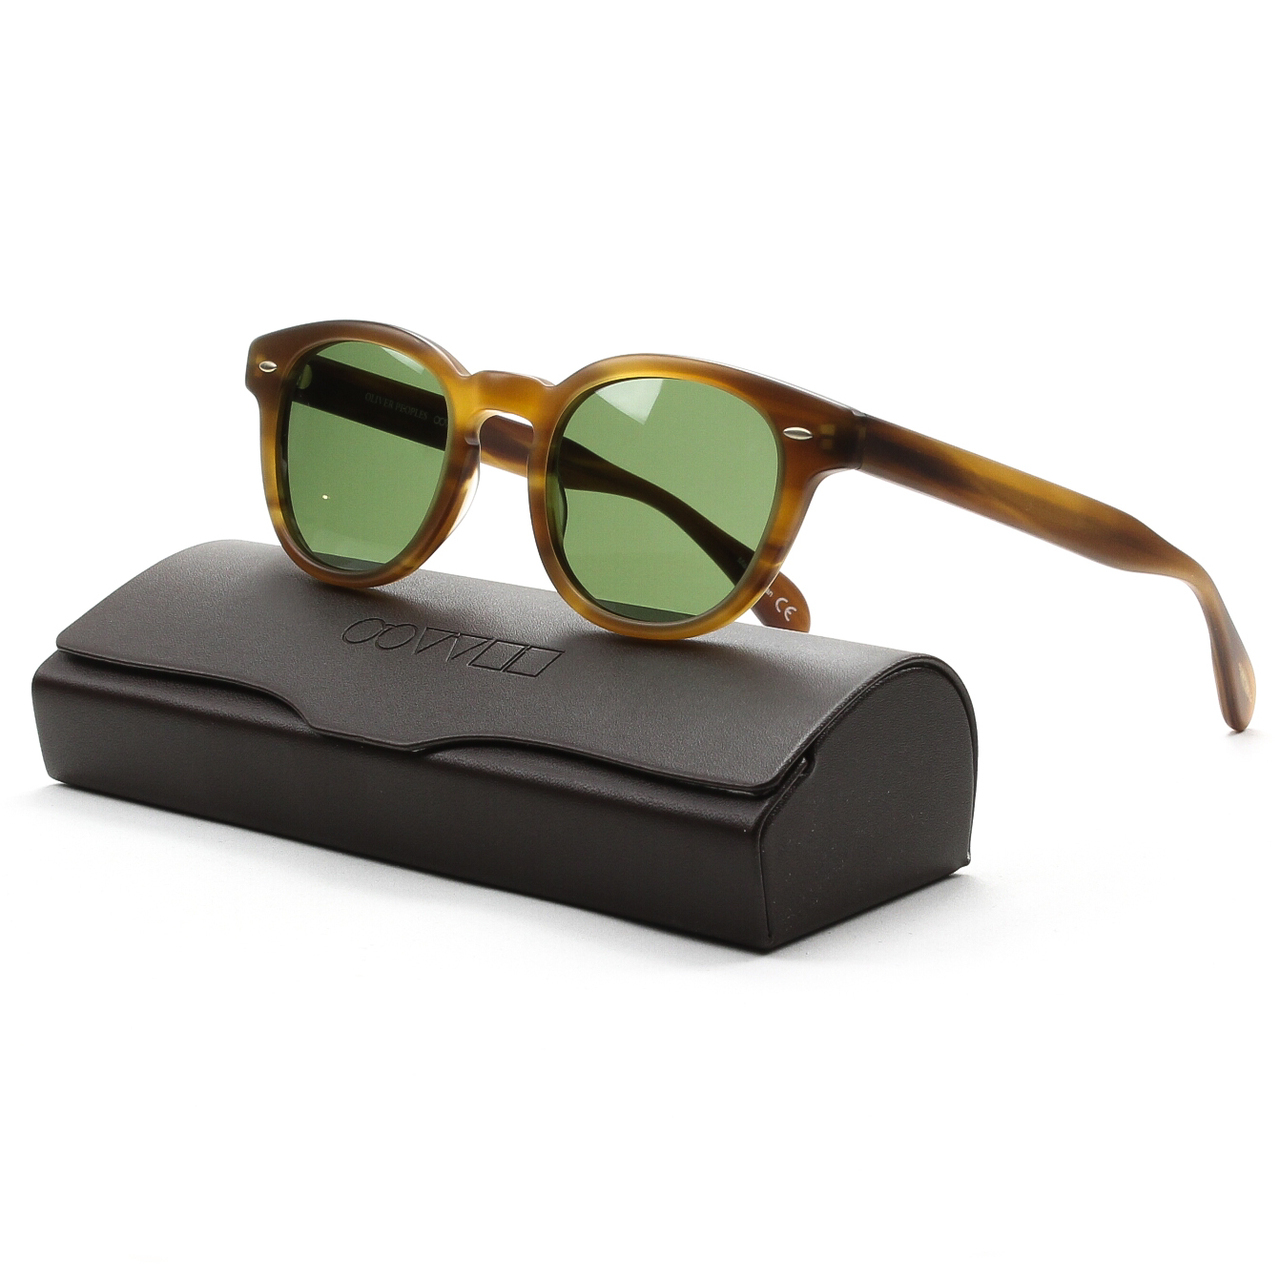 b2c1ccb3a56 Oliver Peoples Sheldrake Sunglasses Ebay - Bitterroot Public Library